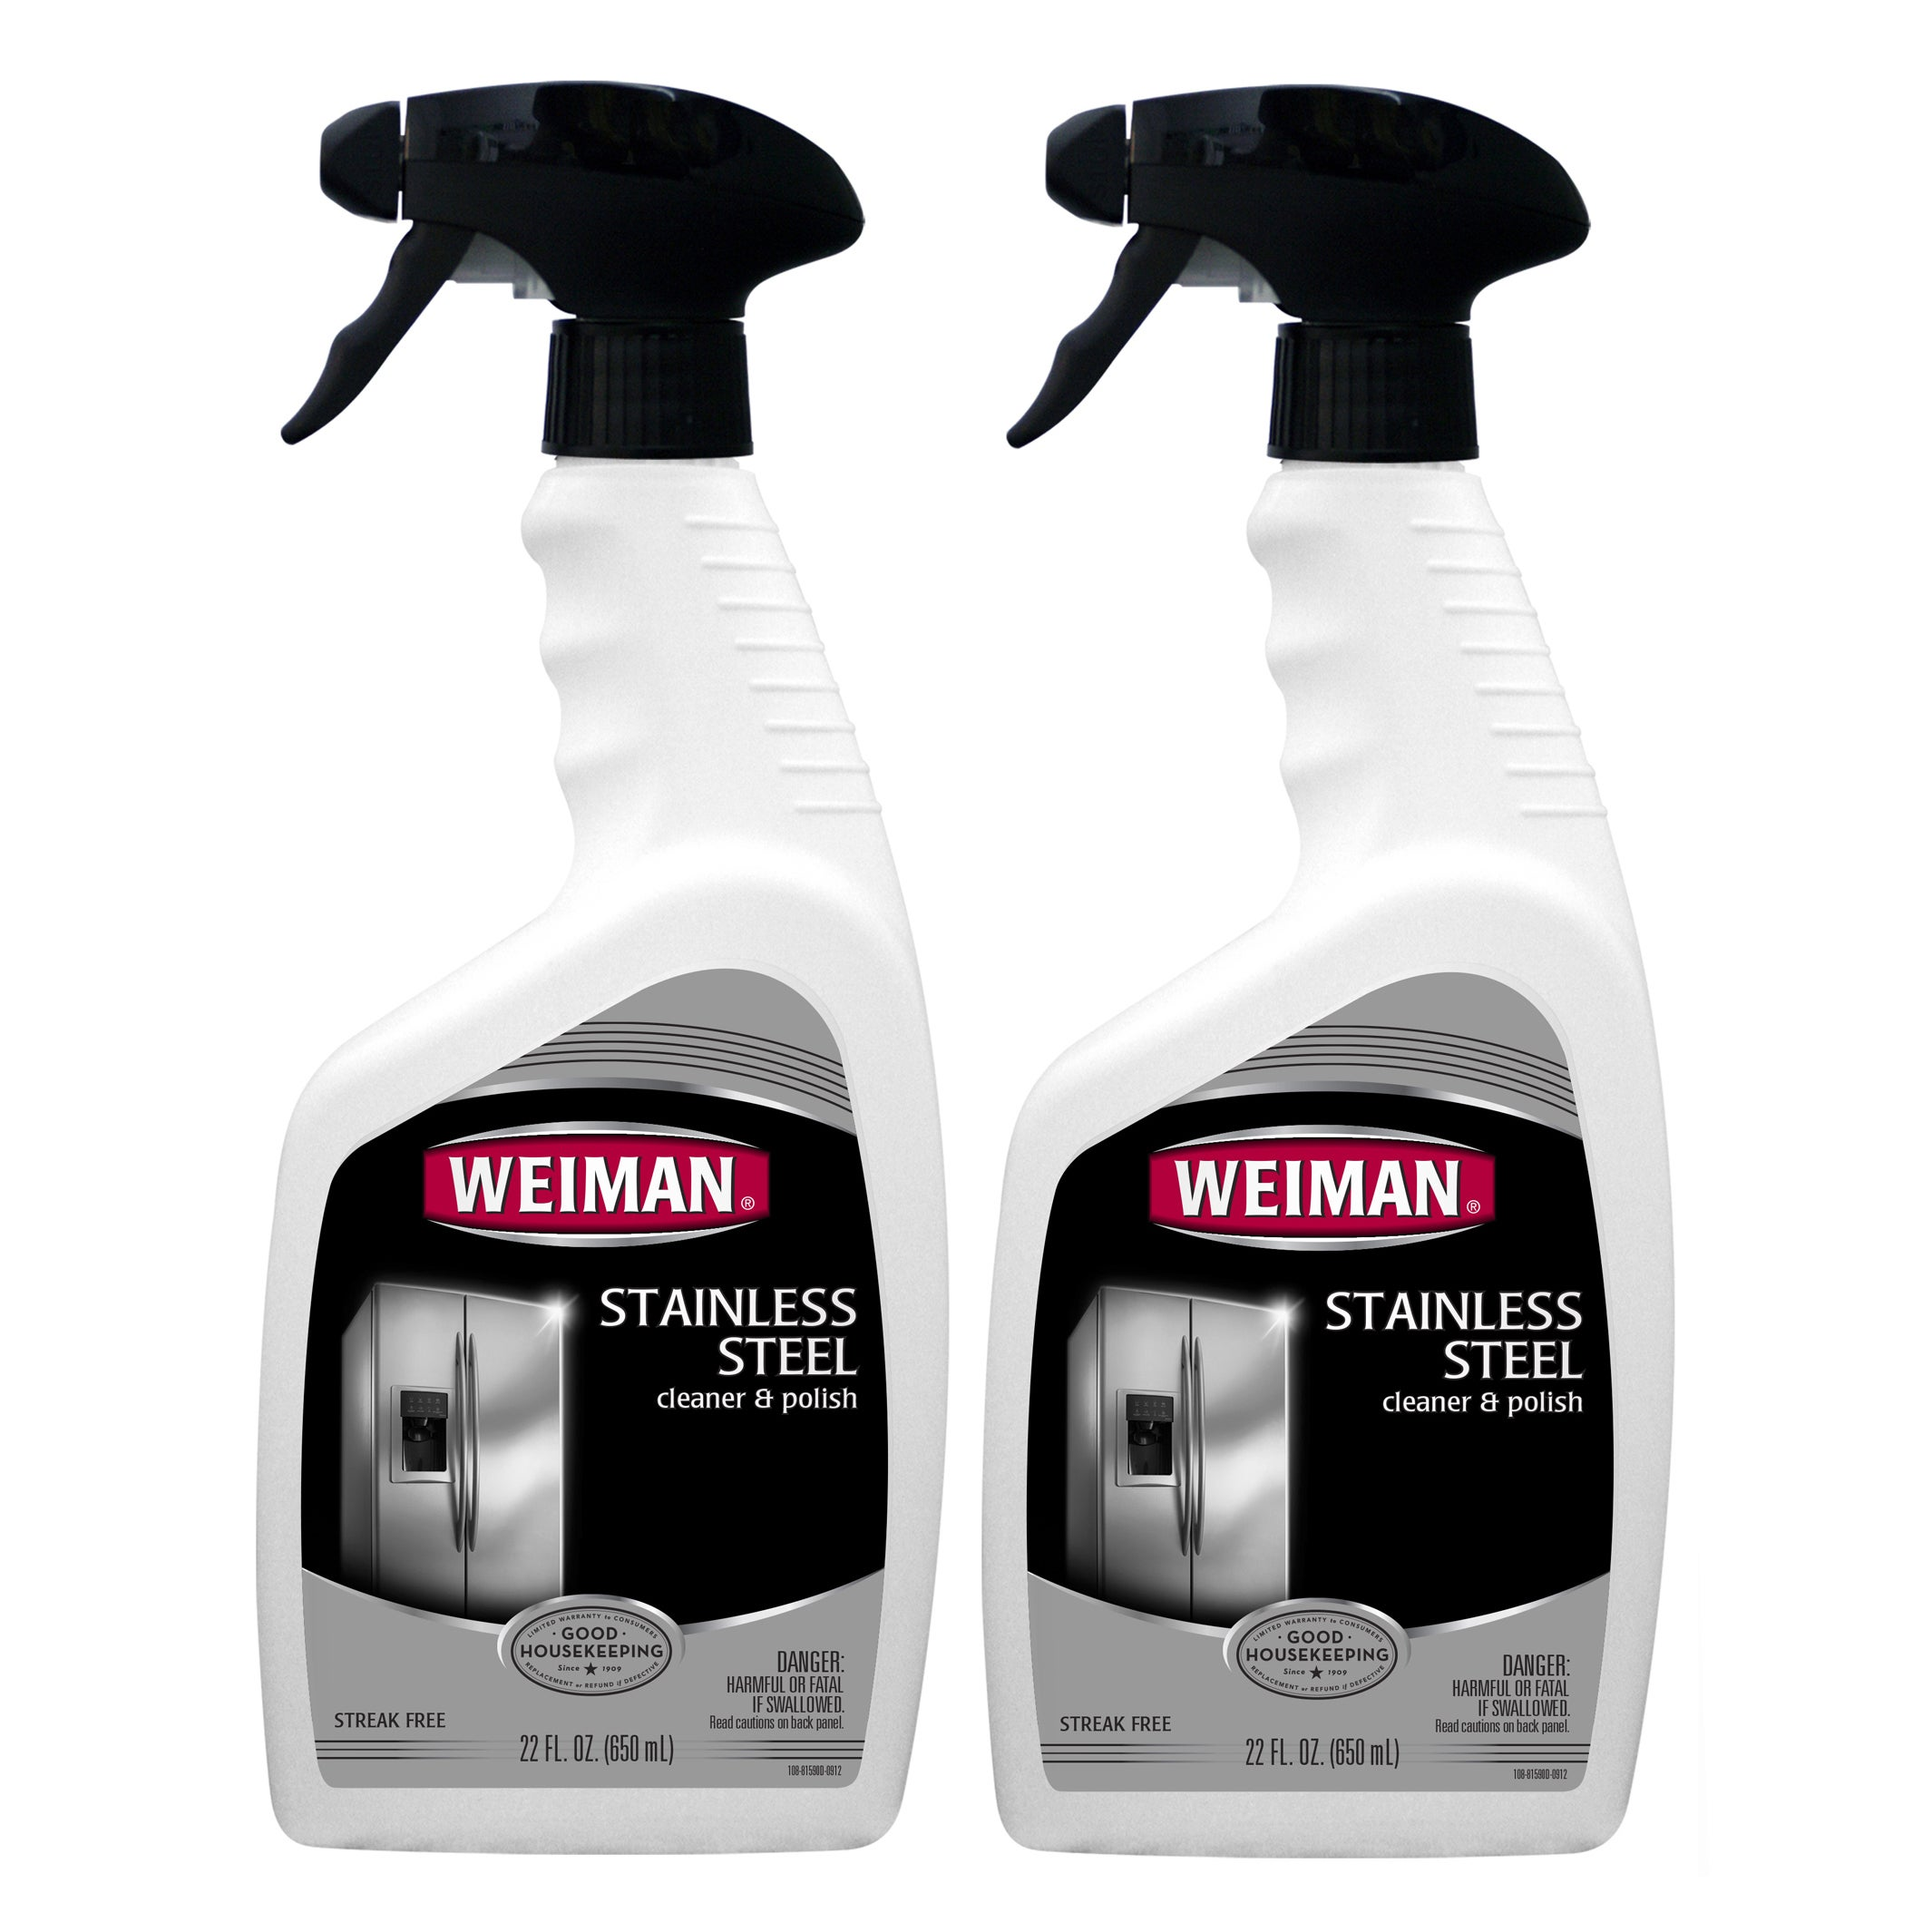 WEIMAN 22-ounce Stainless Steel Cleaner (Pack of 2) (Stai...